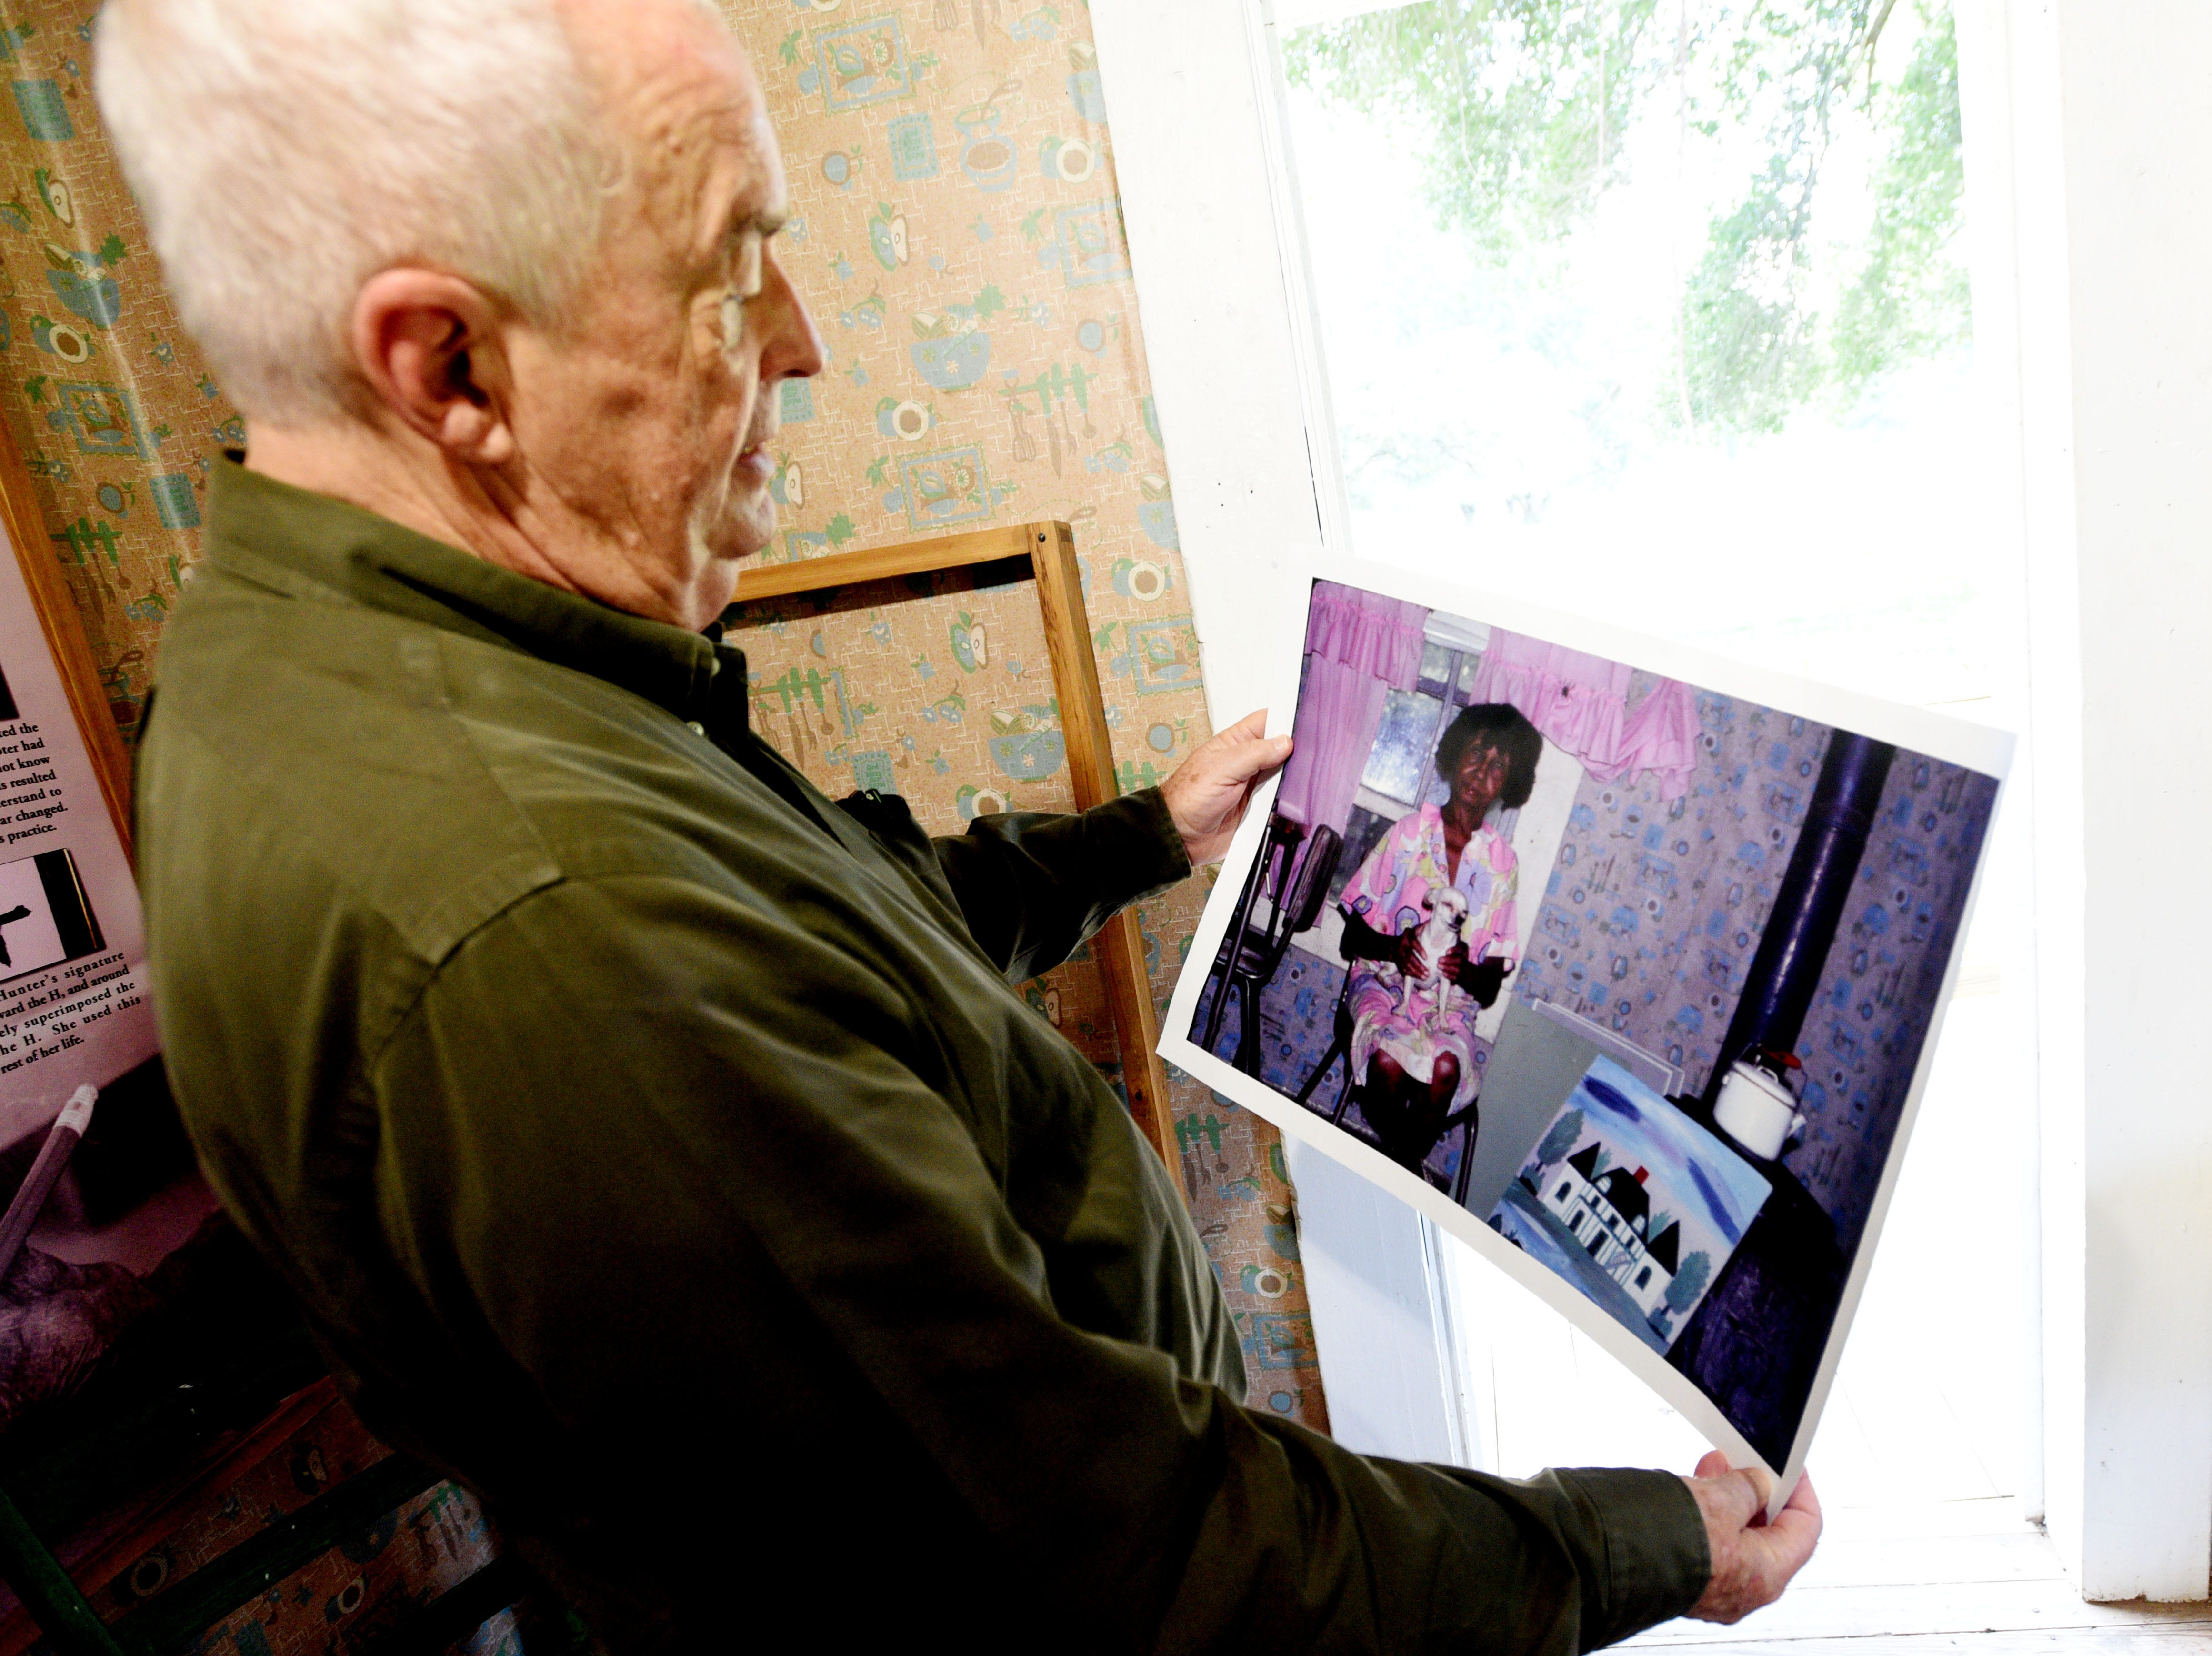 Friend of Clementine Hunter, Tommy Whitehead, looks at a photo he took of her in her house on Melrose Plantation. They used that photo to reproduce the wallpaper in her kitchen.